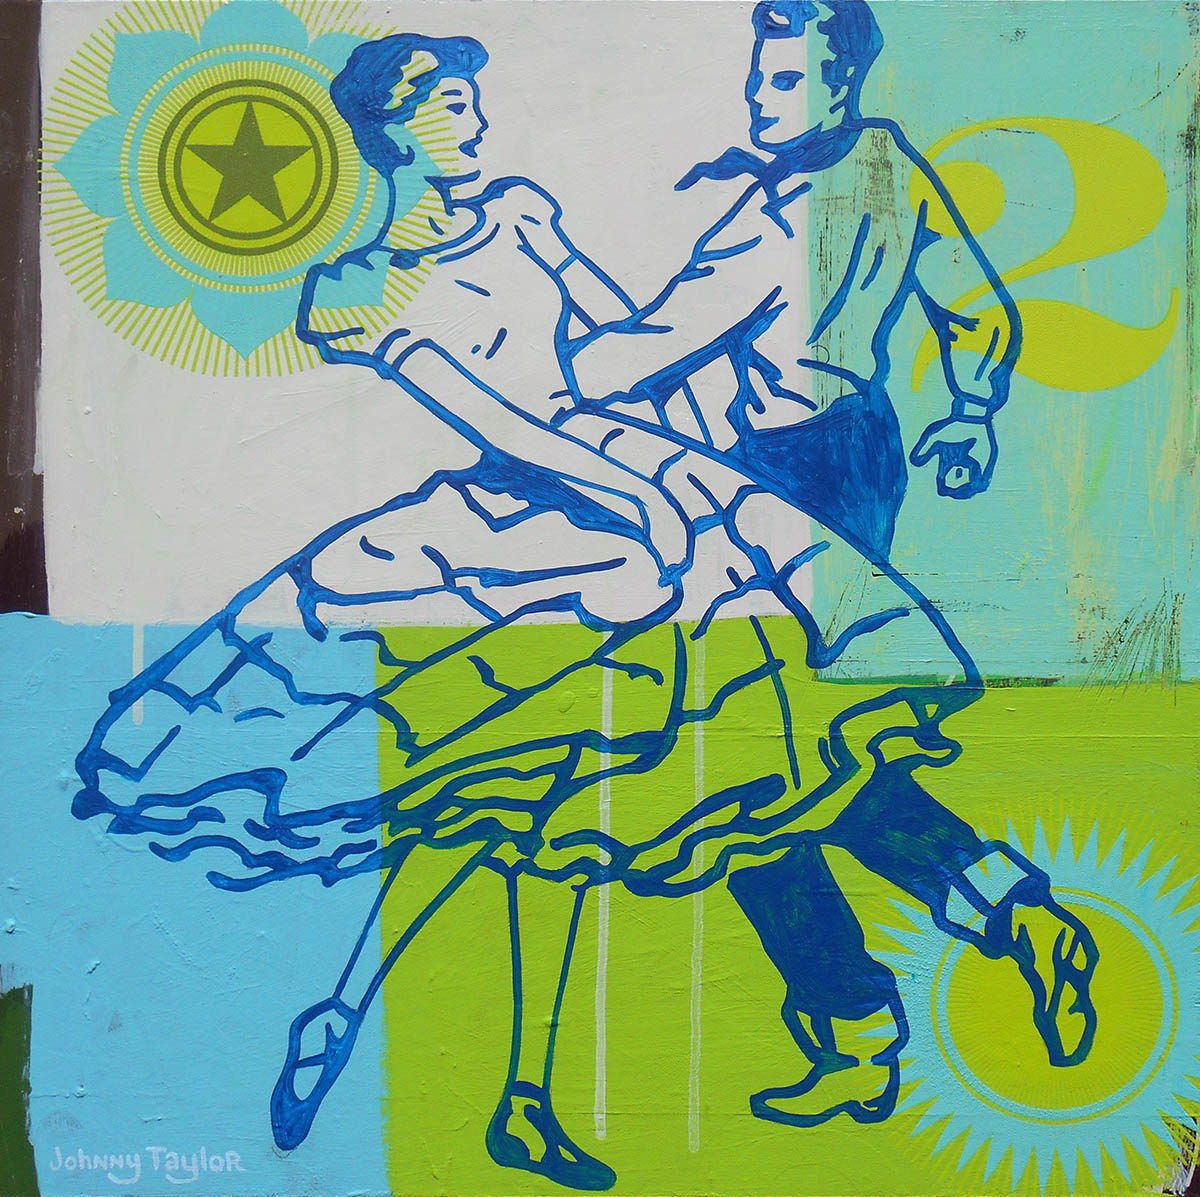 Square Dancers, 2018, painting by Johnny Taylor